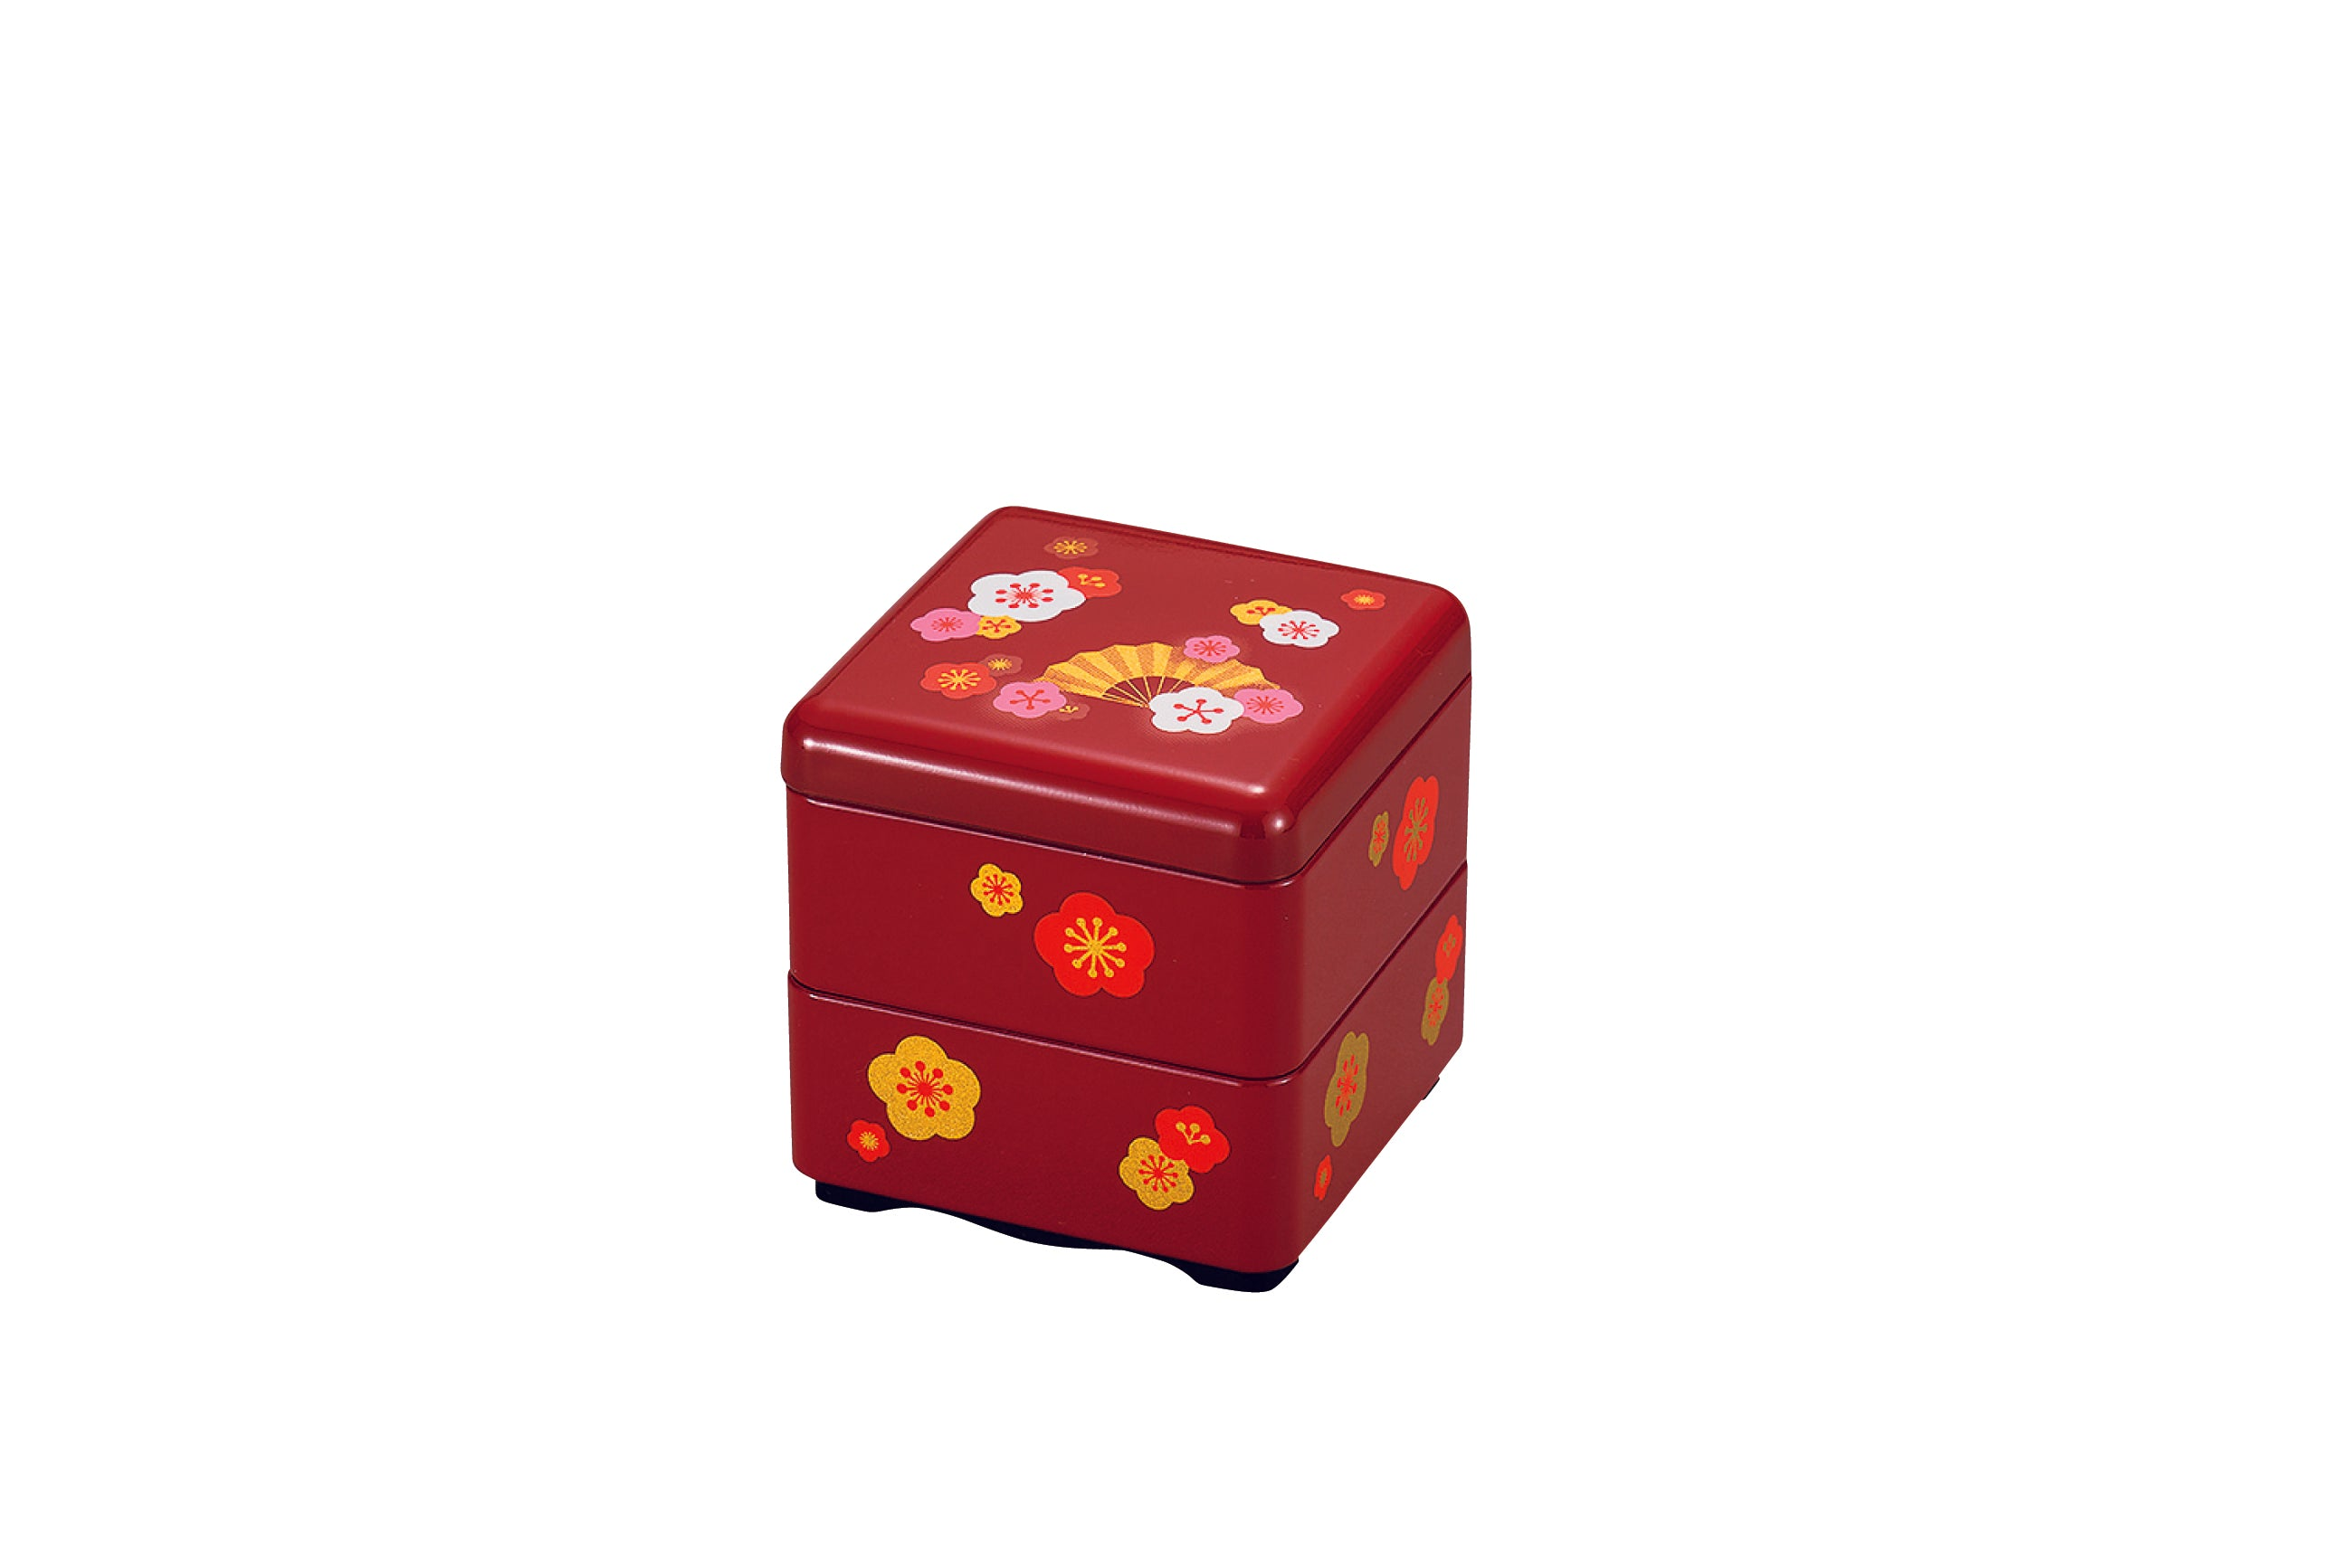 Sensu Sakura Square Bento Box Small | Red by Hakoya - Bento&co Japanese Bento Lunch Boxes and Kitchenware Specialists